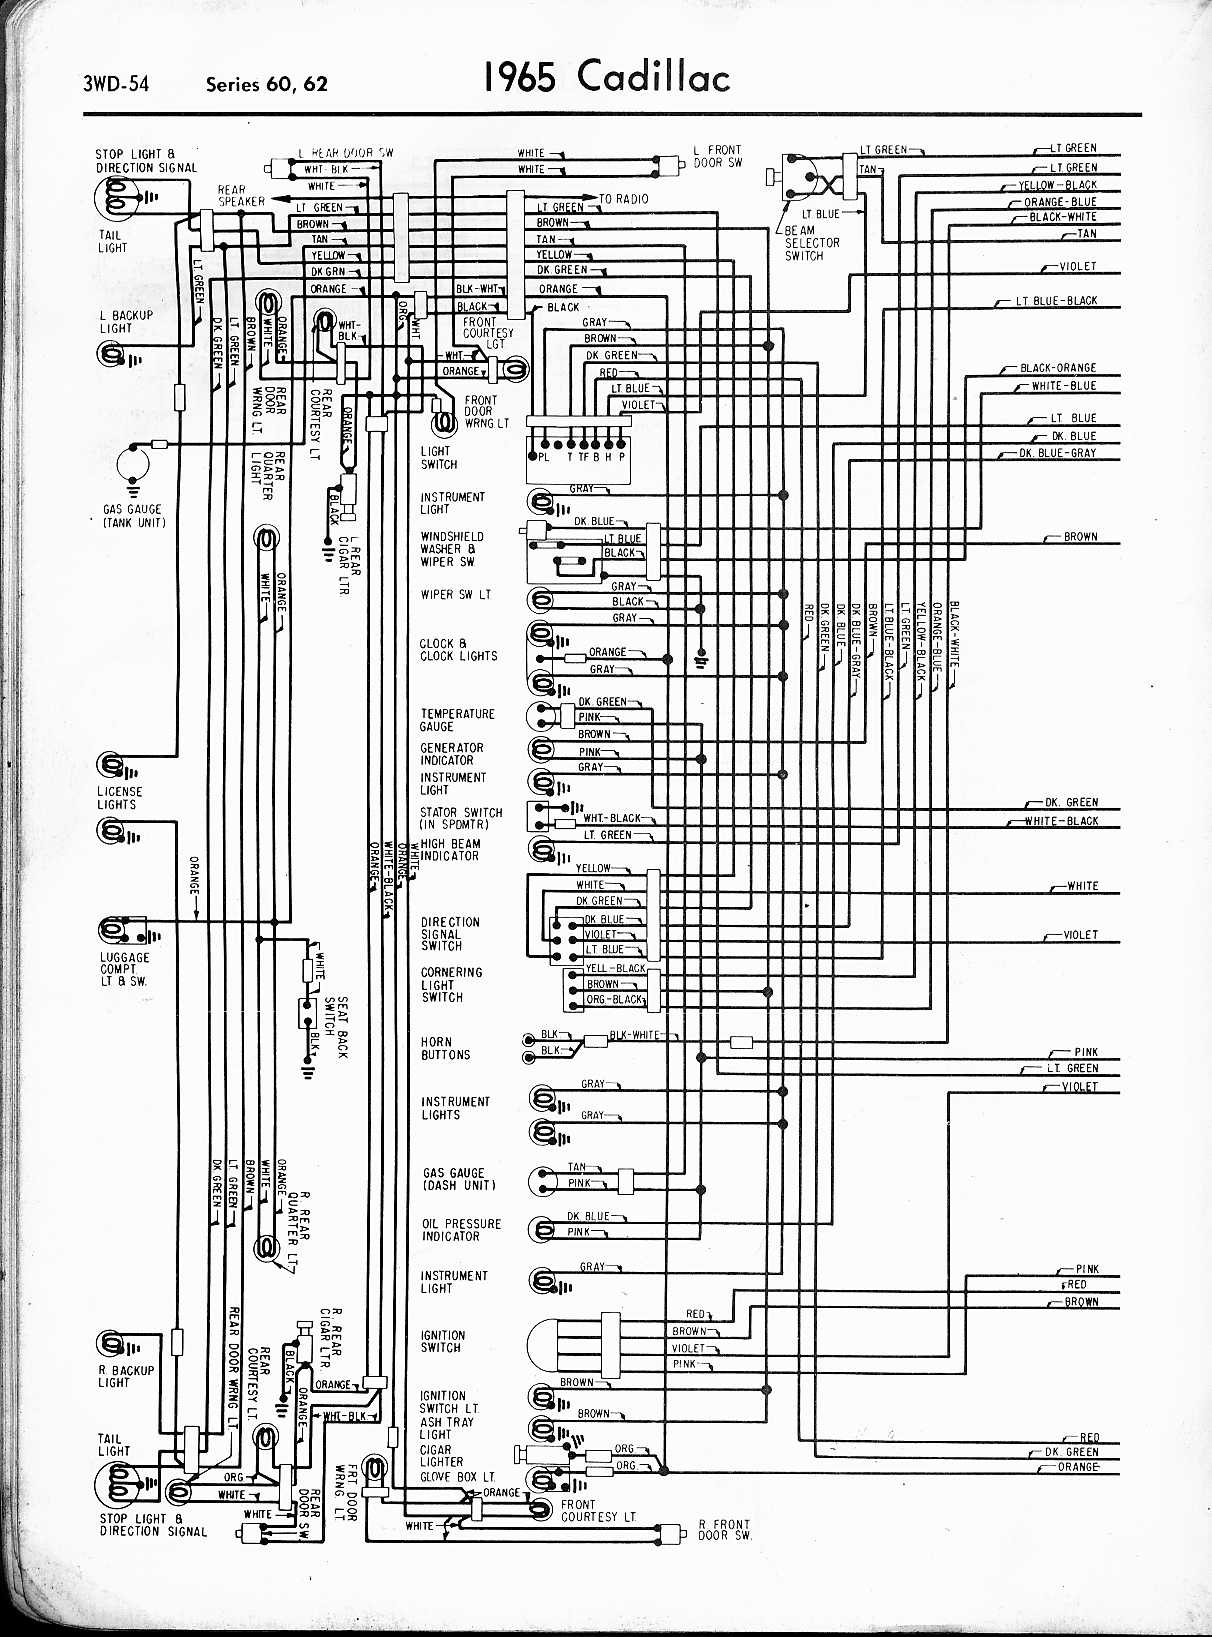 1964 cadillac wiring diagram all wiring diagram cadillac wiring diagrams 1957 1965 1964 mustang wiring diagram 1964 cadillac wiring diagram